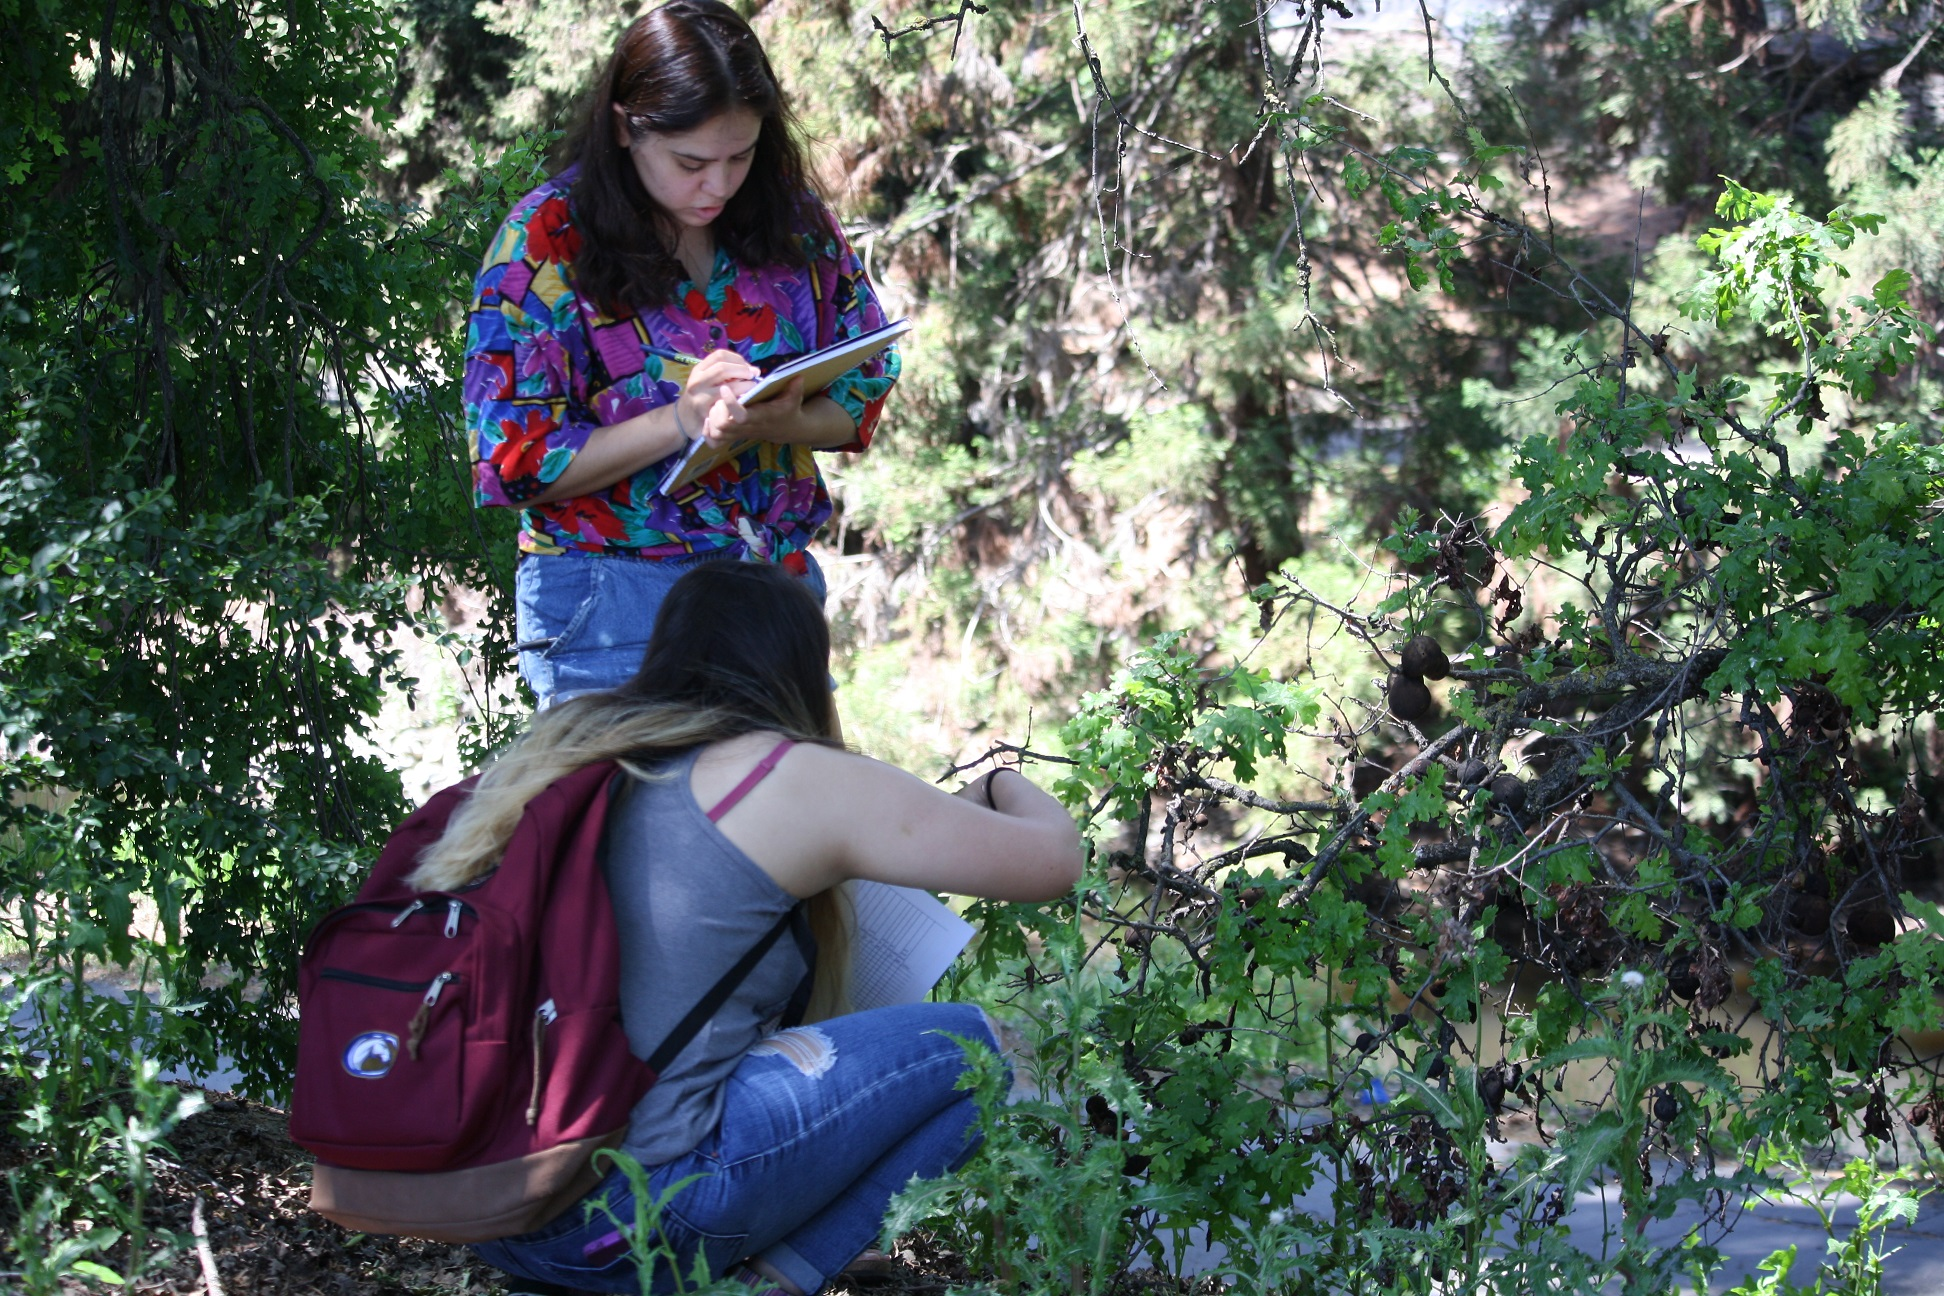 Lisbeth Solis (back, standing) and Abigail Rodriguez (front, kneeling) collect data on insect damage and wasp galls on valley oak trees in the Arboretum.  Laci Gerhart-Barley